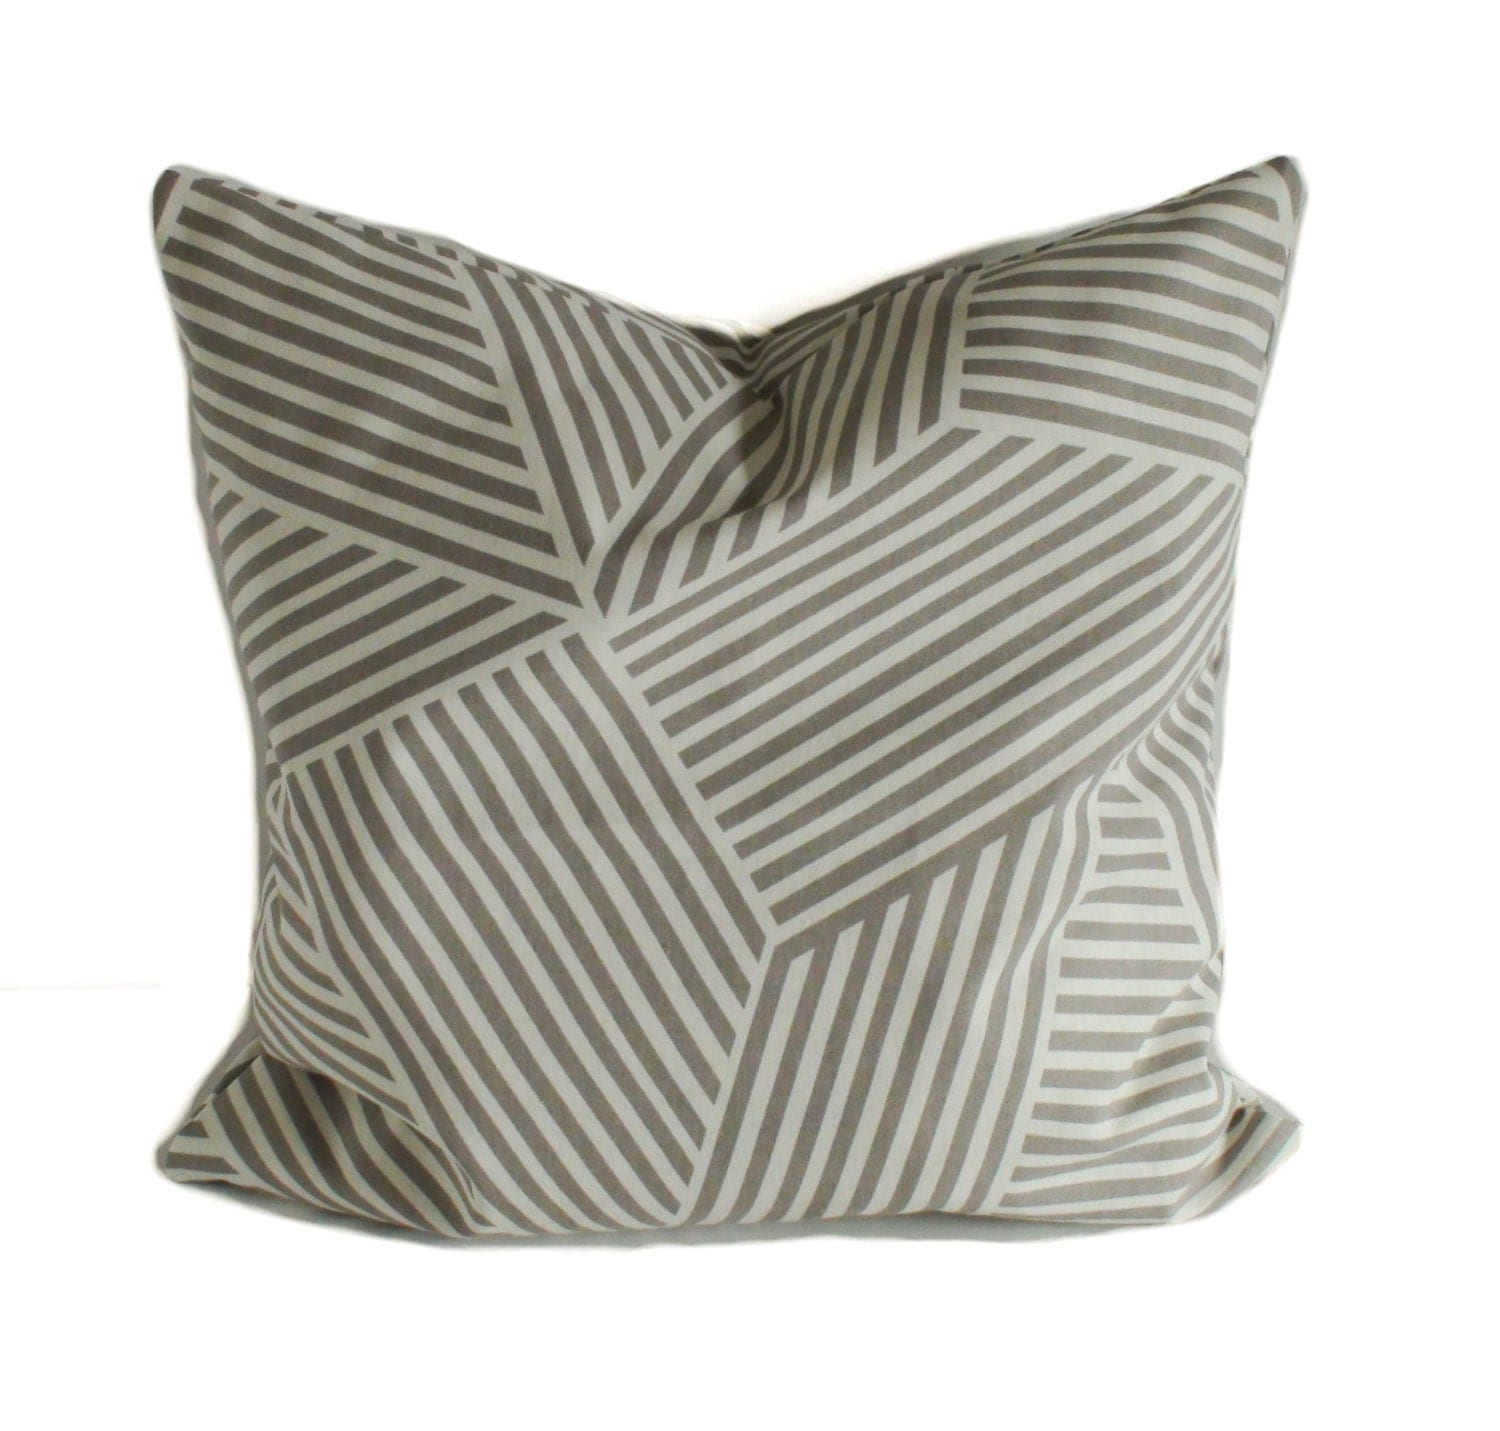 Gray Throw Pillow Cover Gray Pillow Pillow Cover Decorative